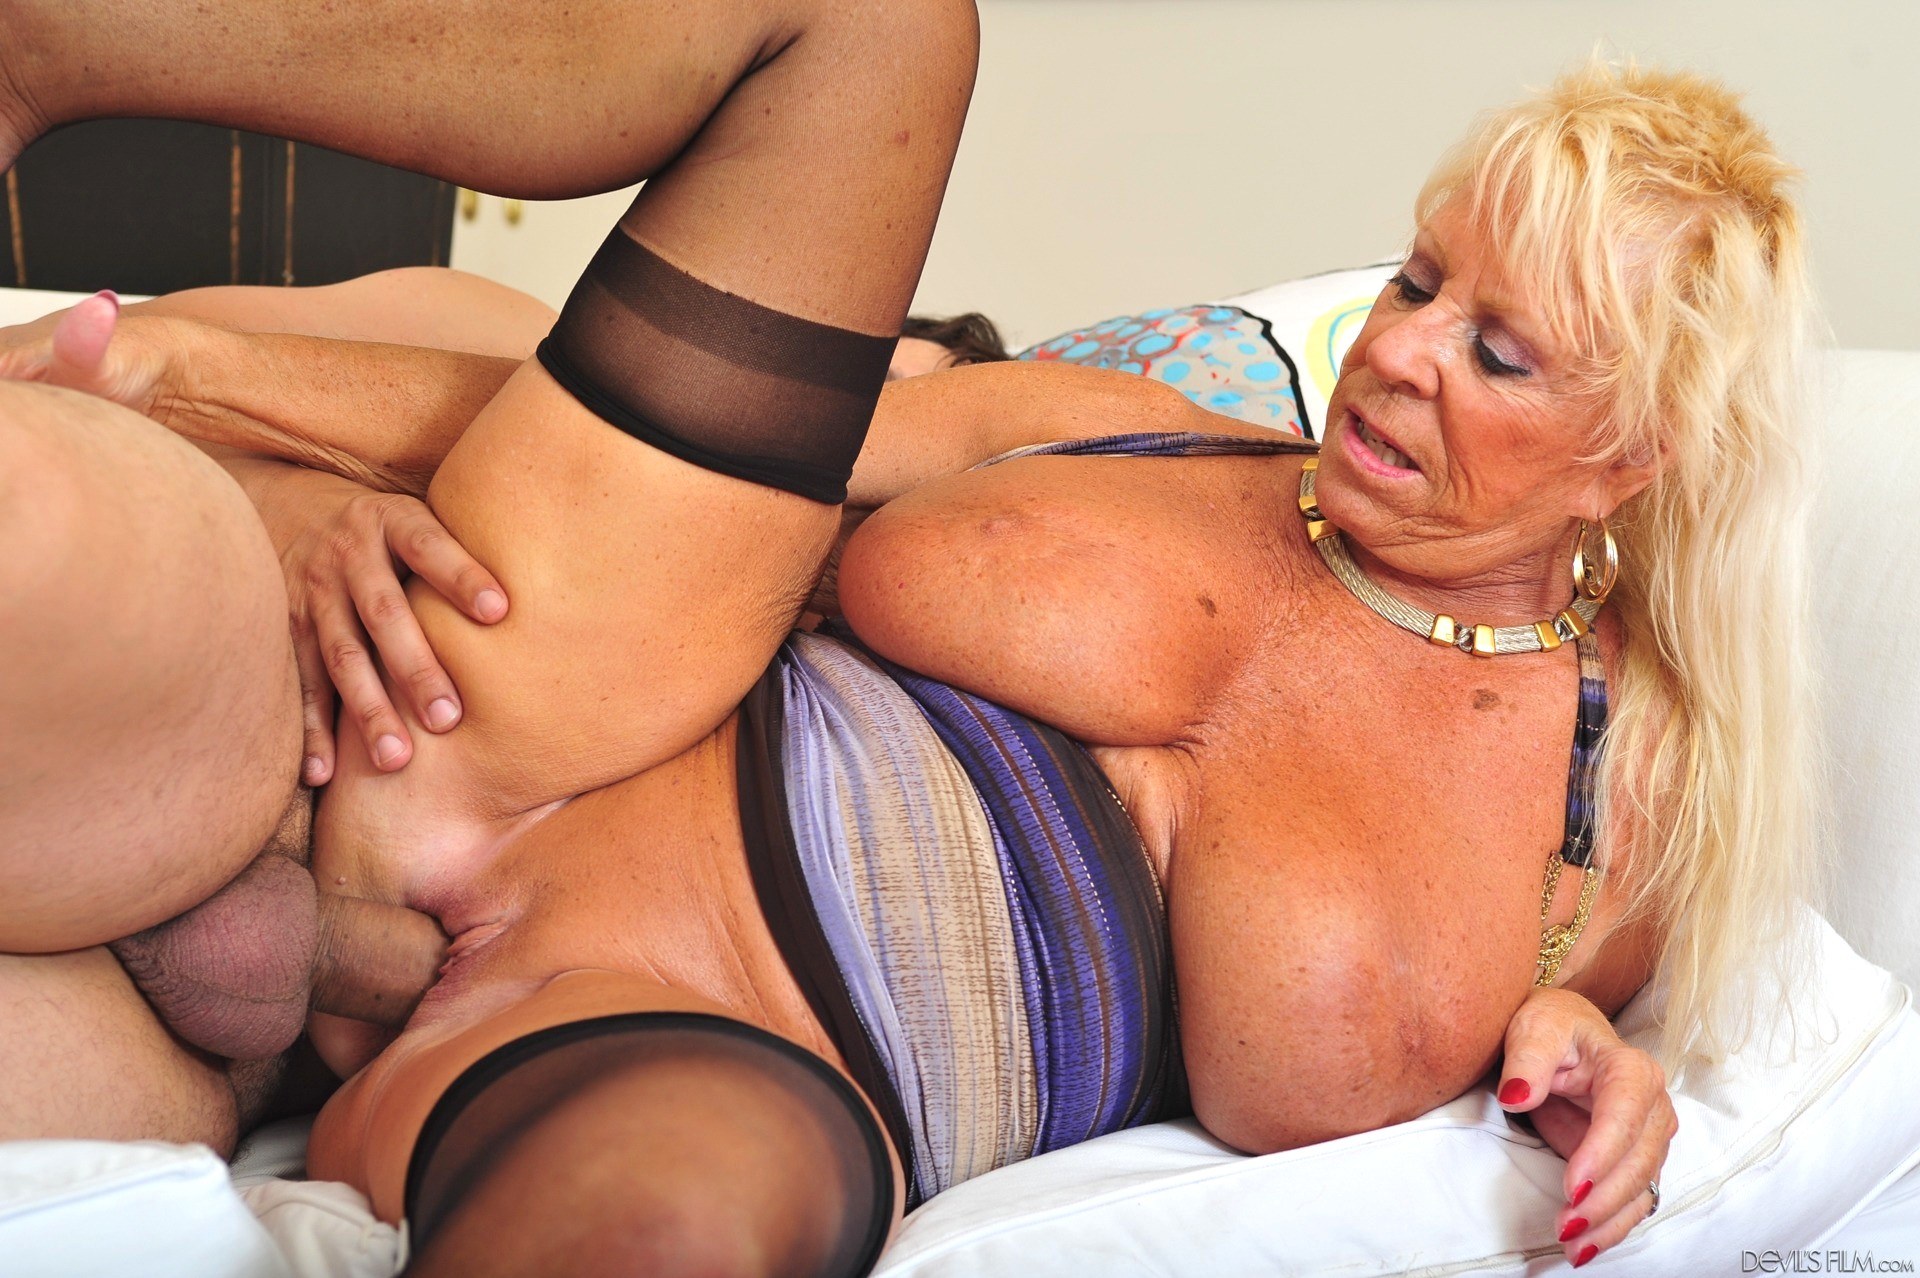 Xxx mature grannies dvds, hand fucking pictures xxx